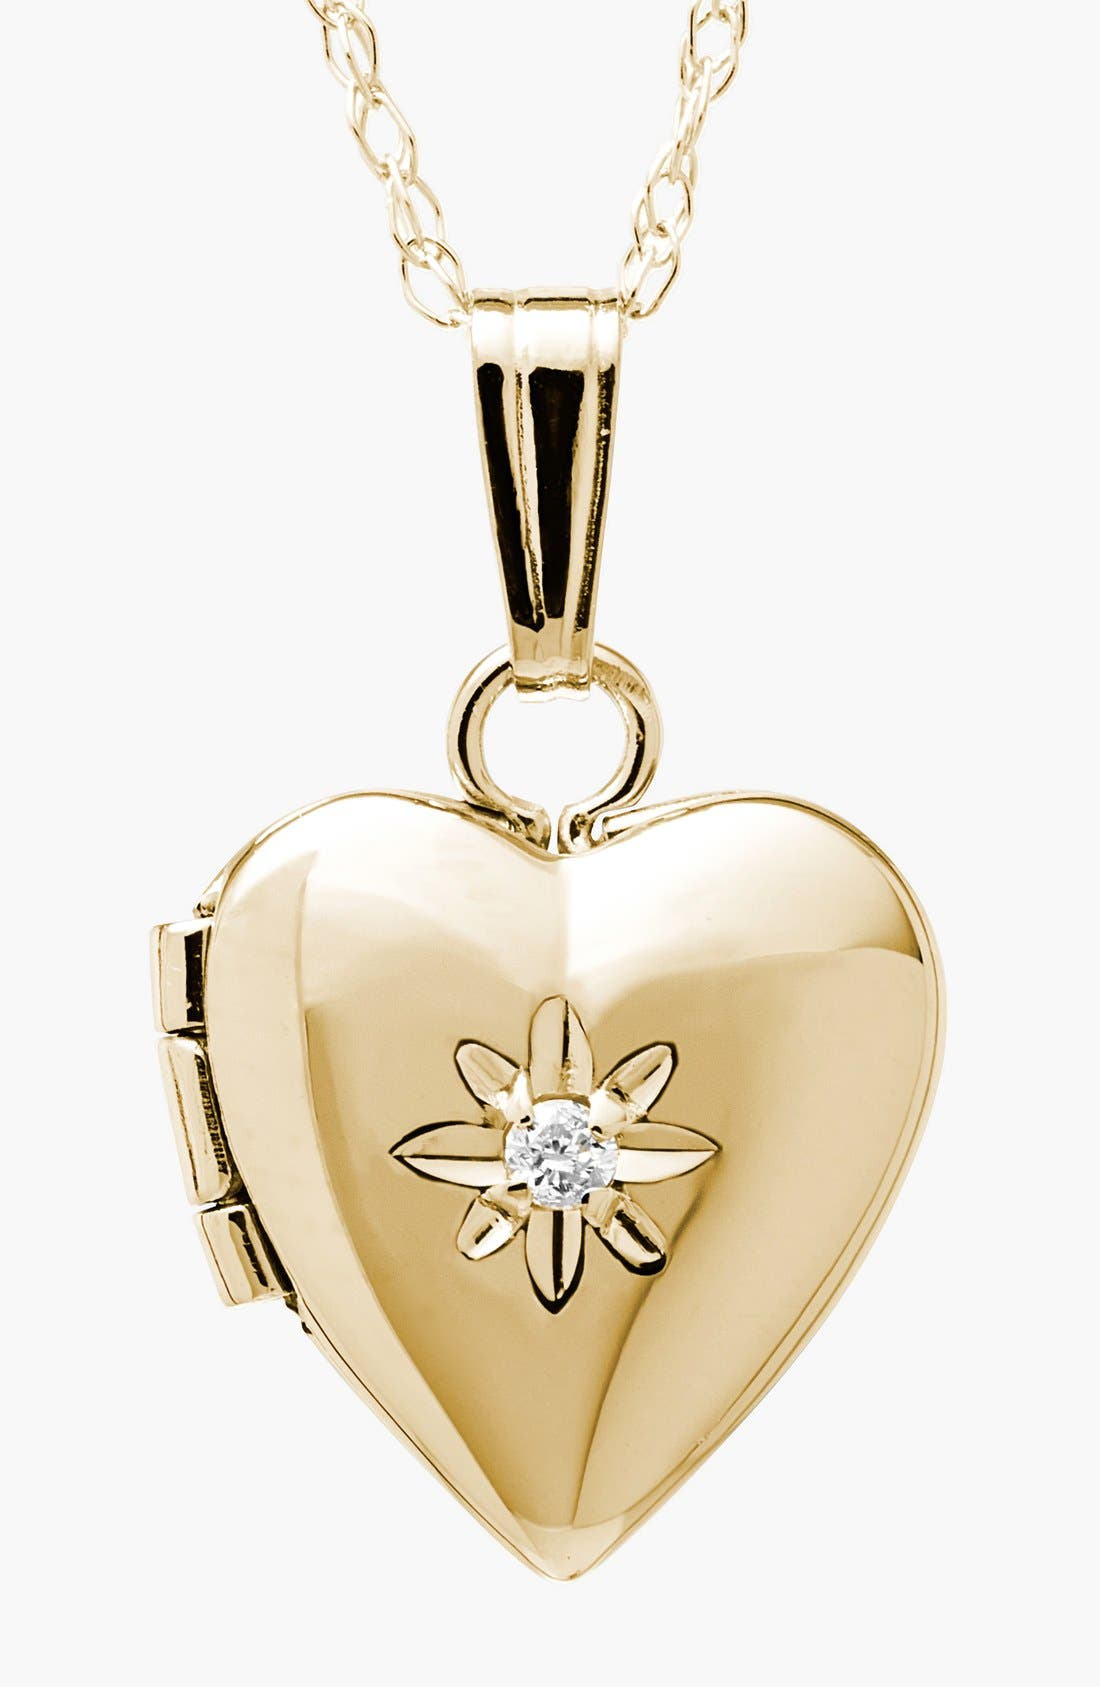 14k Gold & Diamond Heart Locket Necklace,                             Main thumbnail 1, color,                             Gold